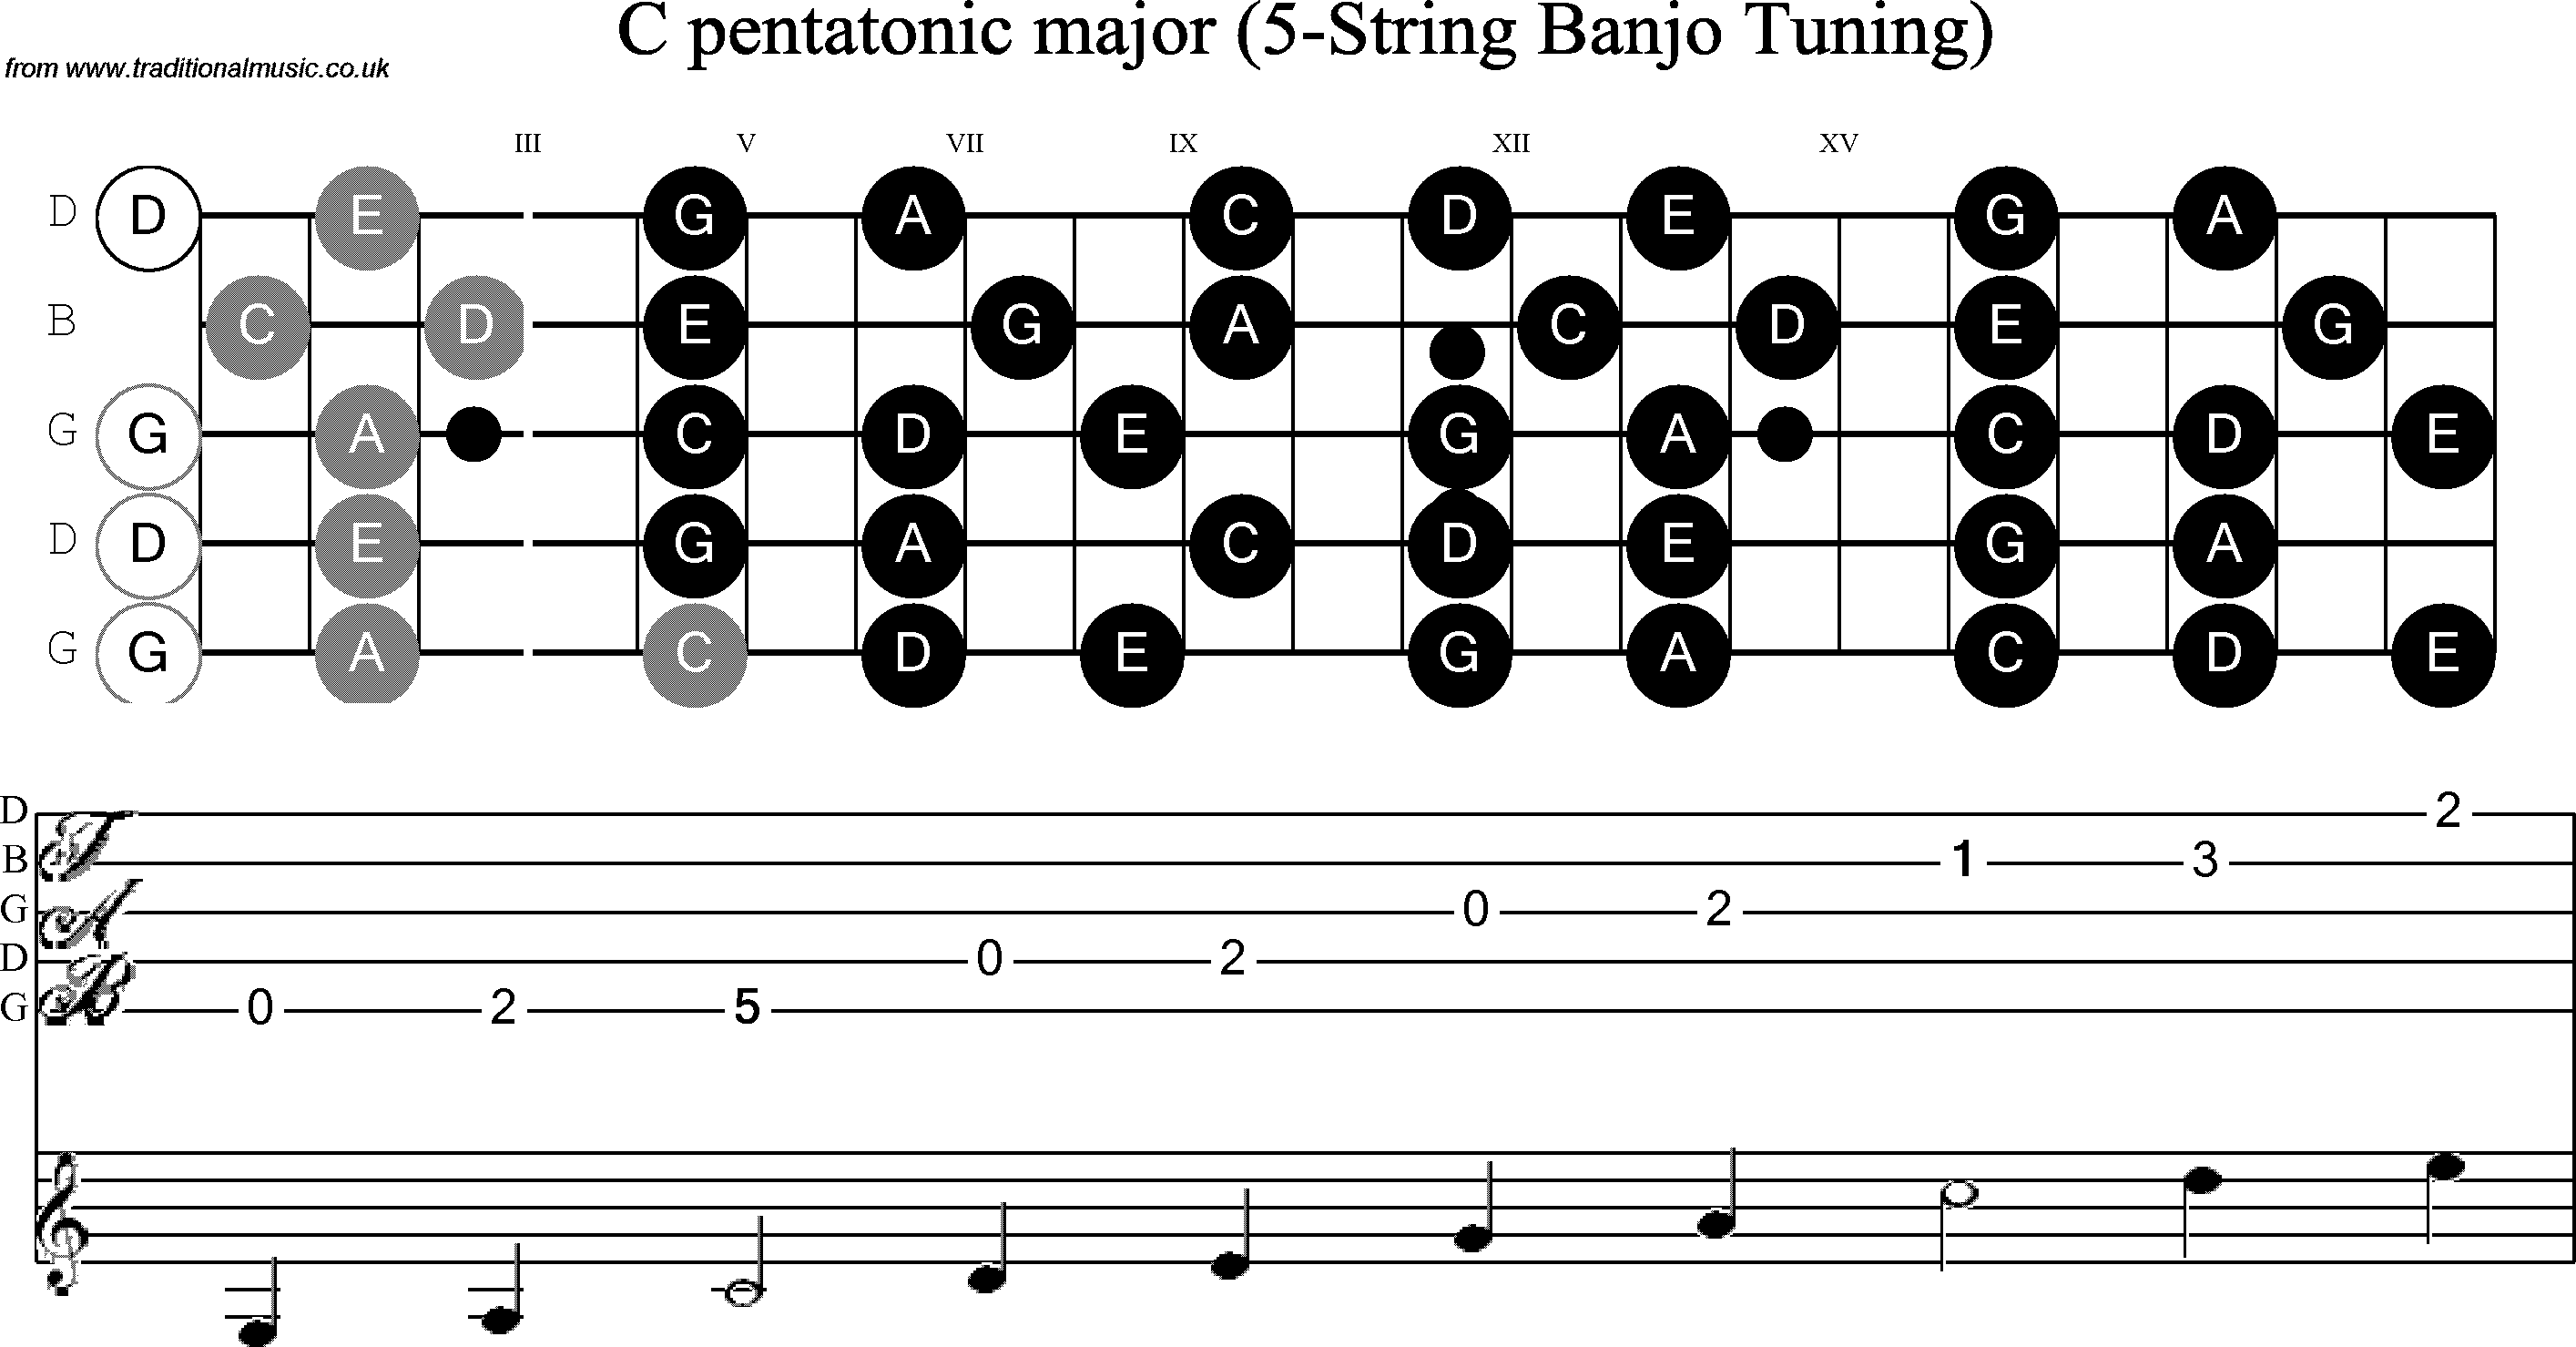 Banjo Scale Diagram Wiring And Ebooks Parts Musical Scales For G C Pentatonic Rh Traditionalmusic Co Uk Brass